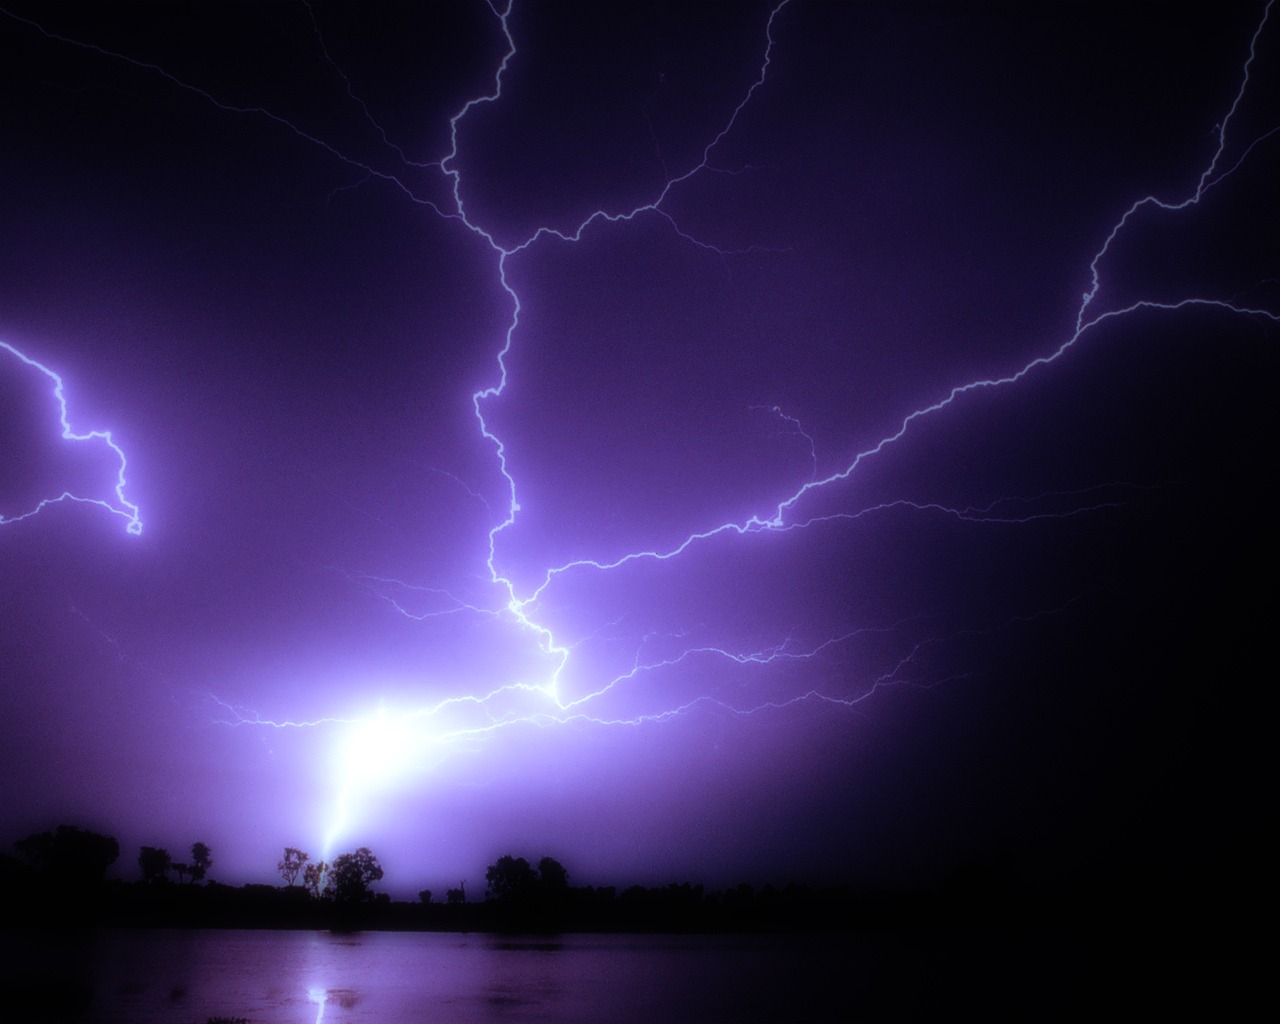 lightning strike Wallpaper Background 37154 1280x1024